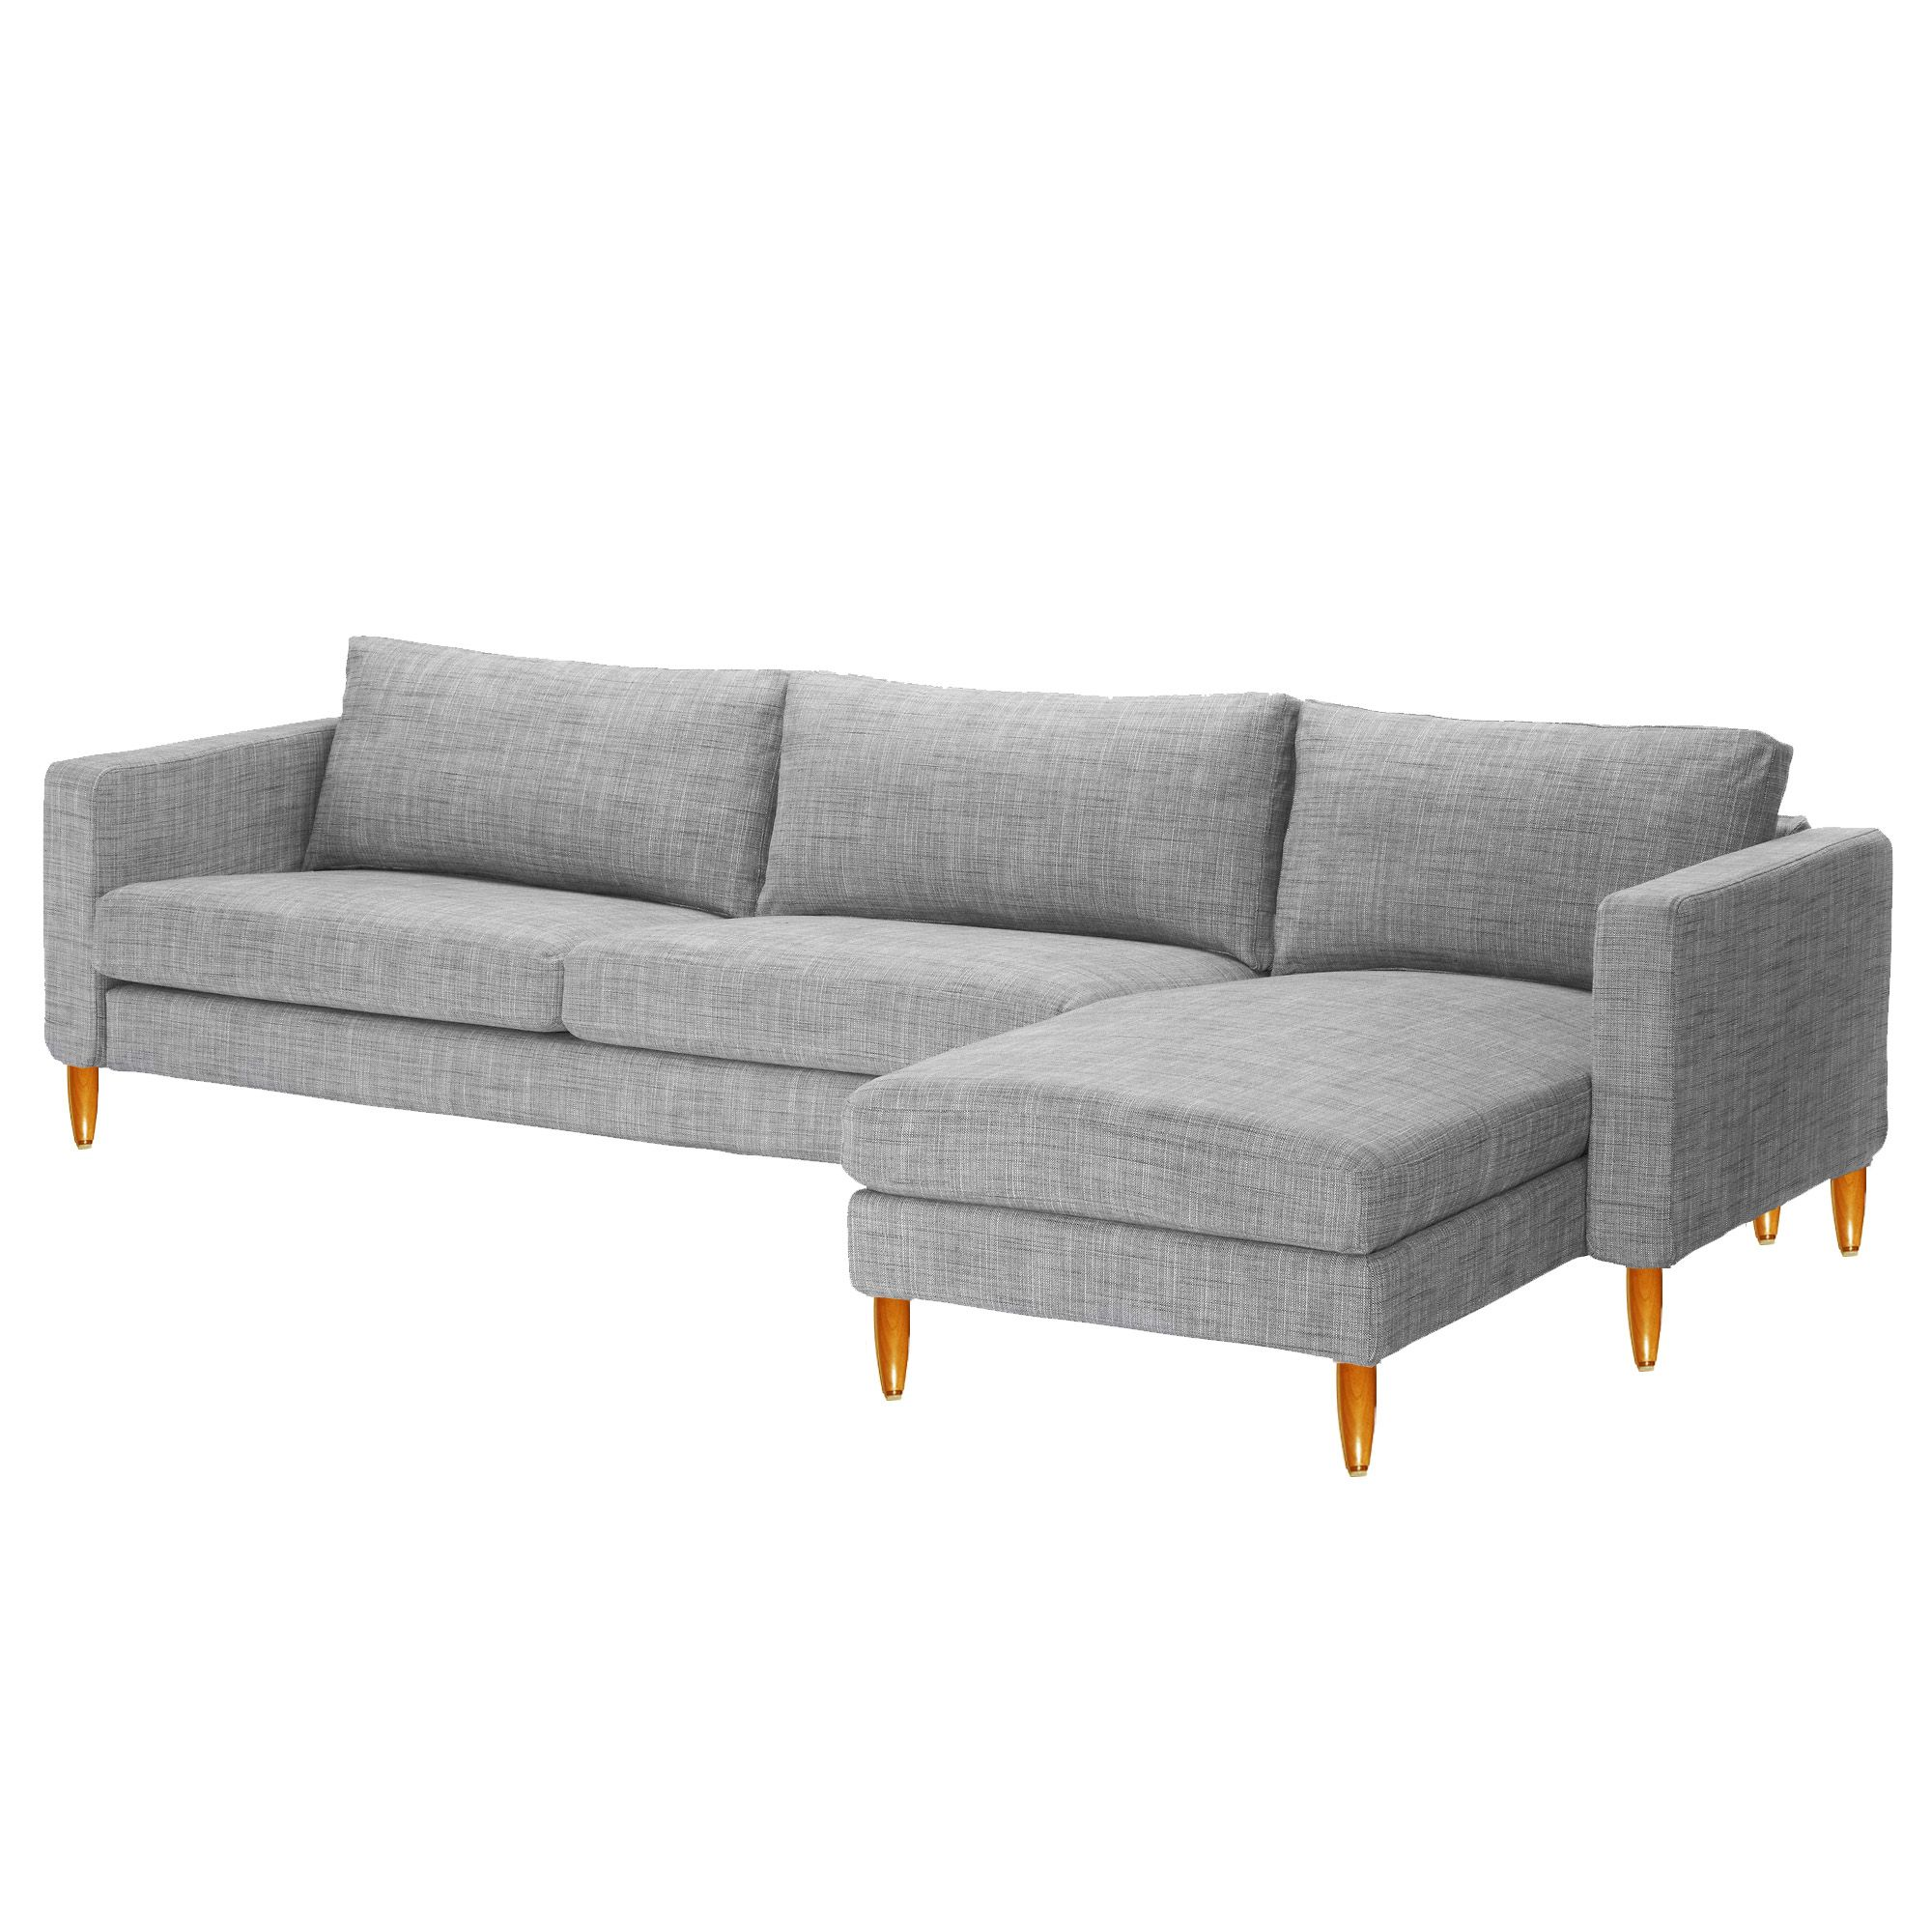 Exceptionnel Ikea Karlstad Sofa + Chaise With New Legs.   $610 Total (BOUGHT)